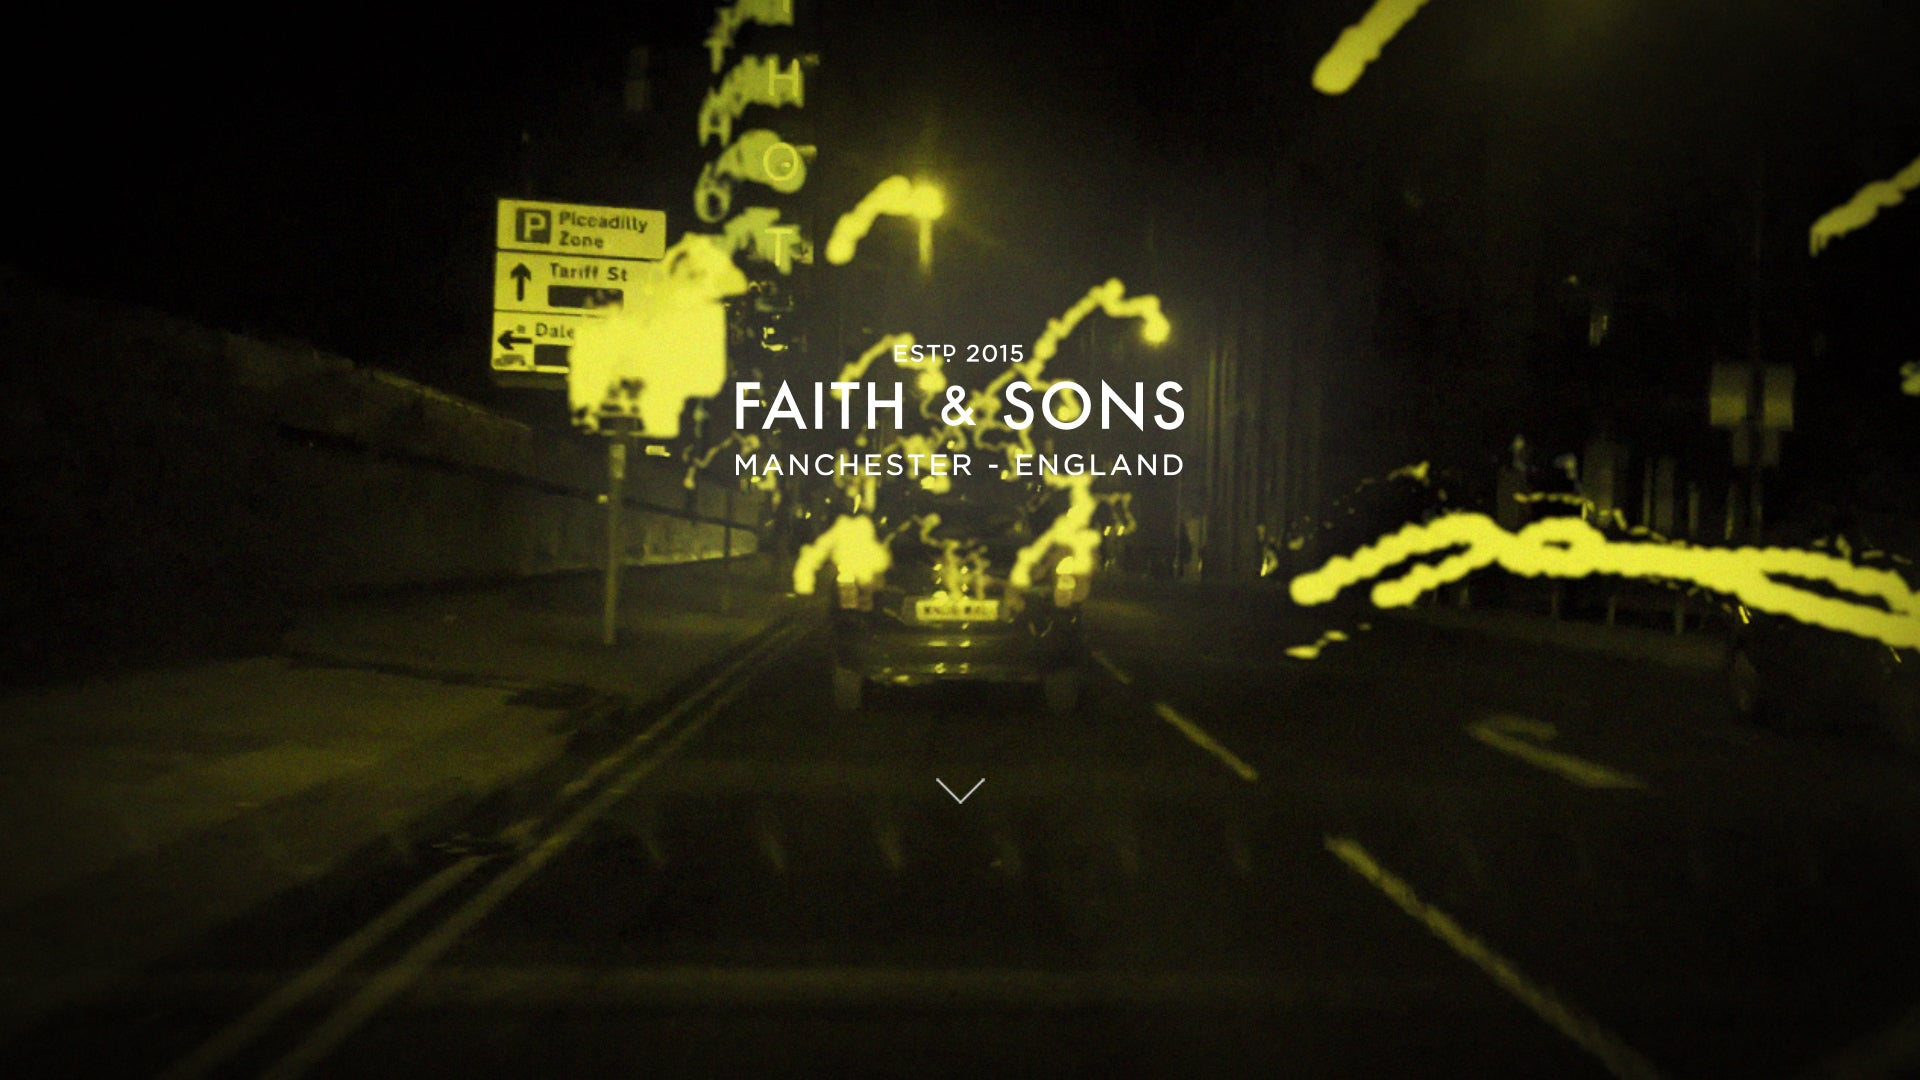 Faith and sons Manchester